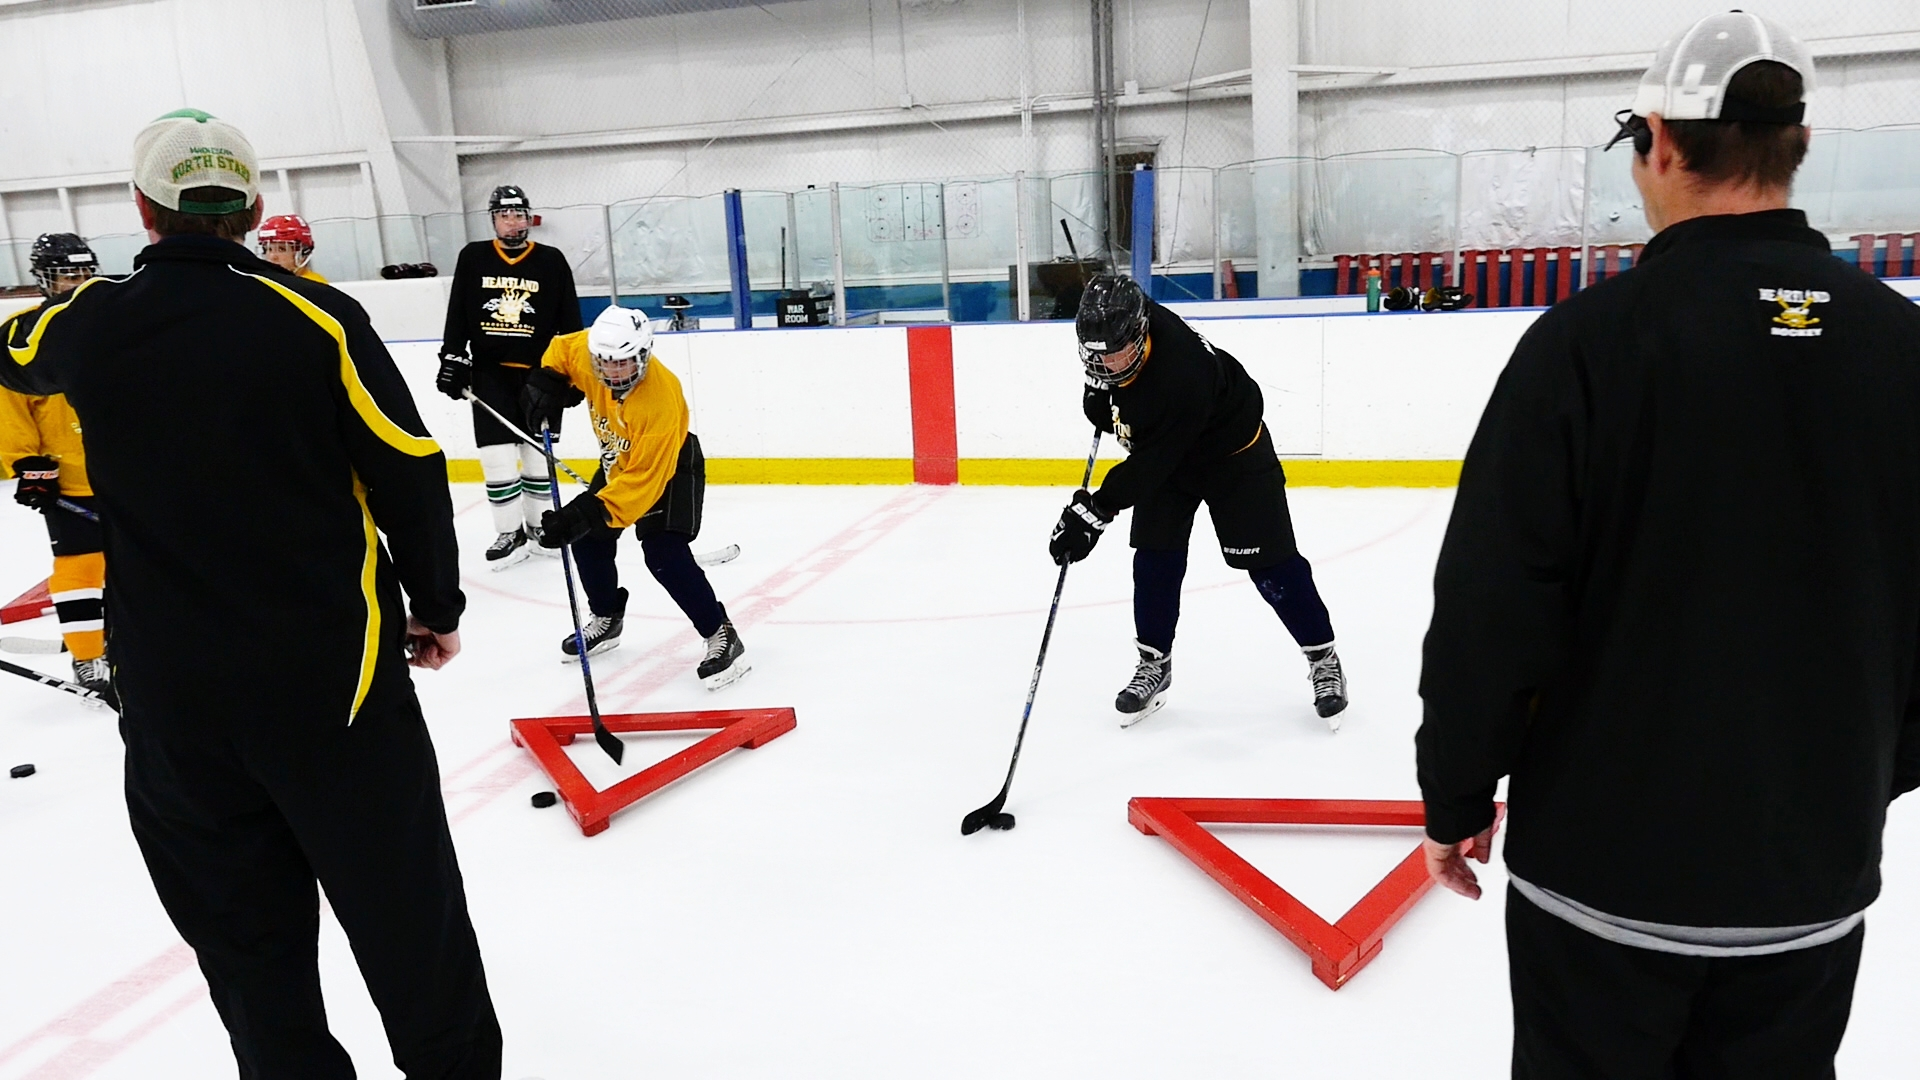 On-Ice-Hockey-Training.jpg